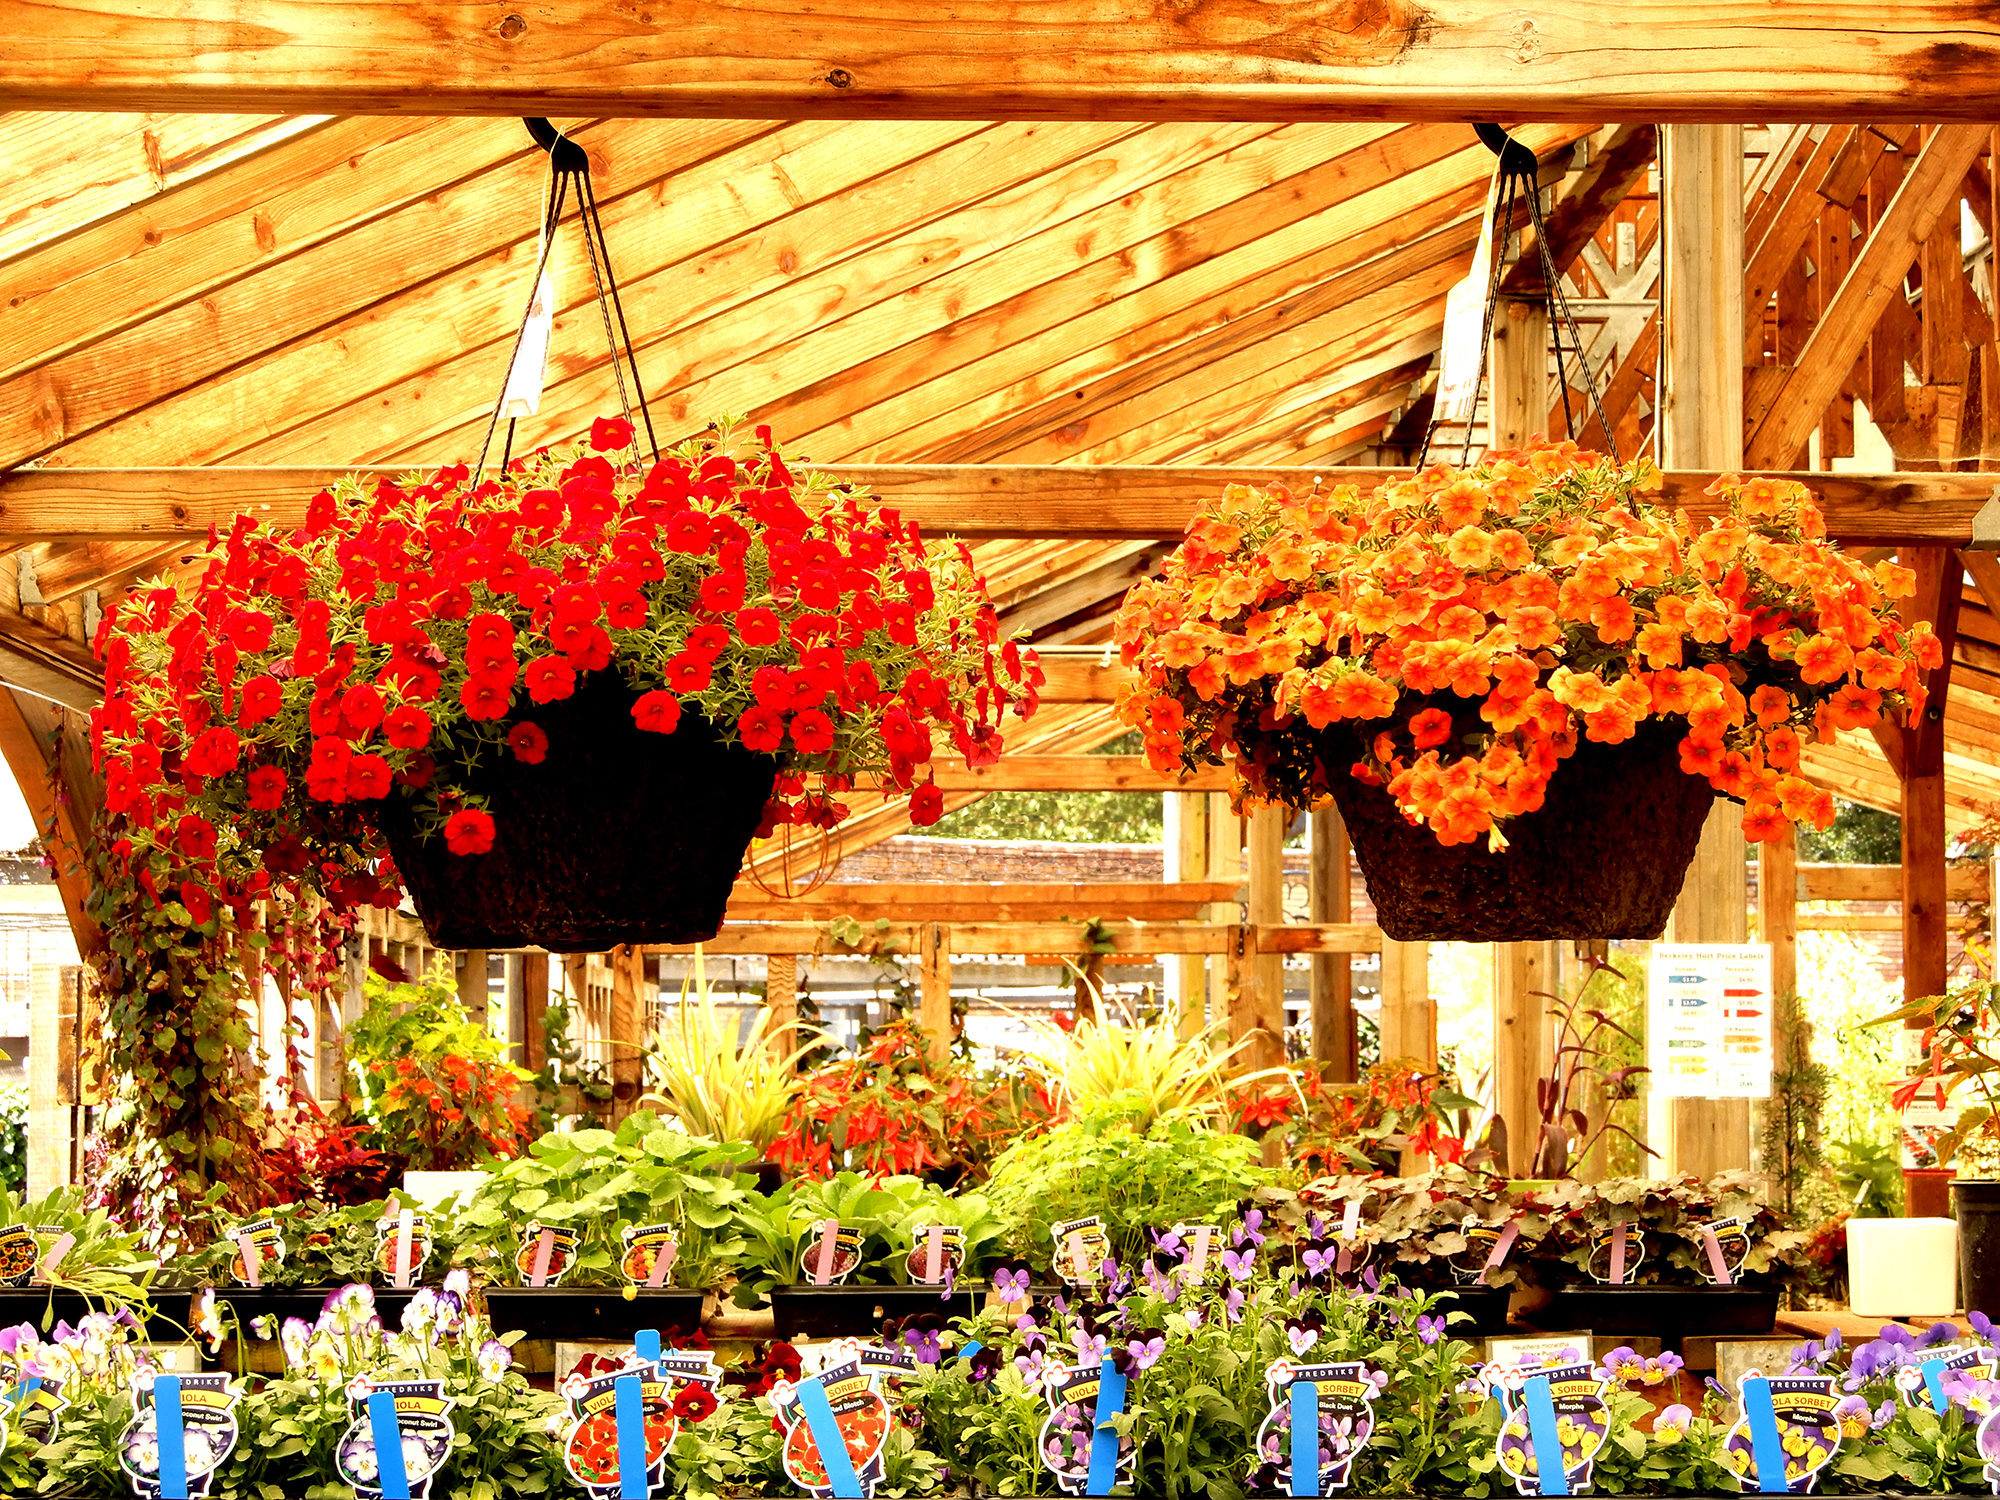 Hanging Baskets - Photo by Helen Krayenhoff